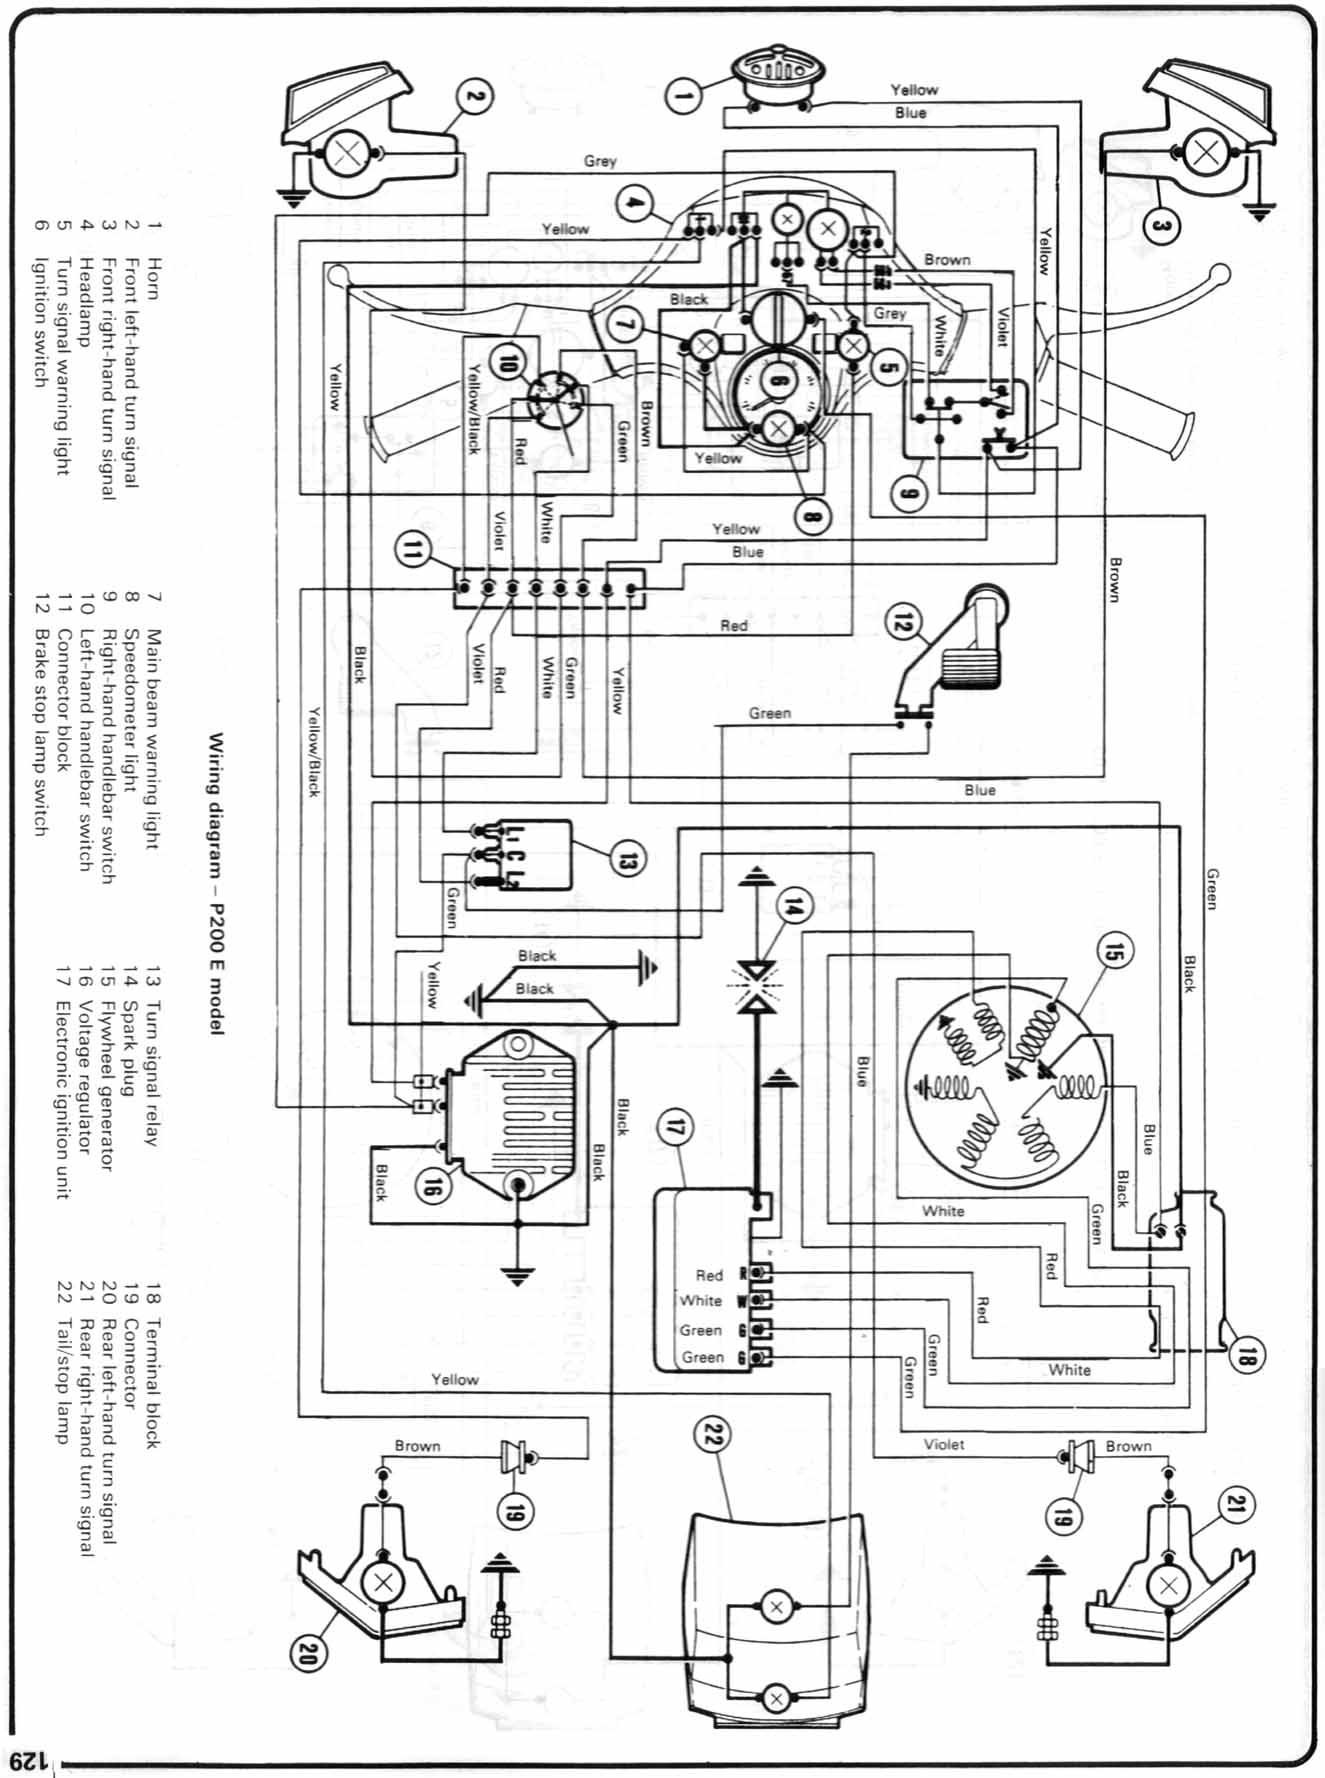 vespa wiring diagram private sharing about wiring diagram u2022 rh caraccessoriesandsoftware co uk vespa et4 125 wiring diagram vespa et4 50 wiring diagram